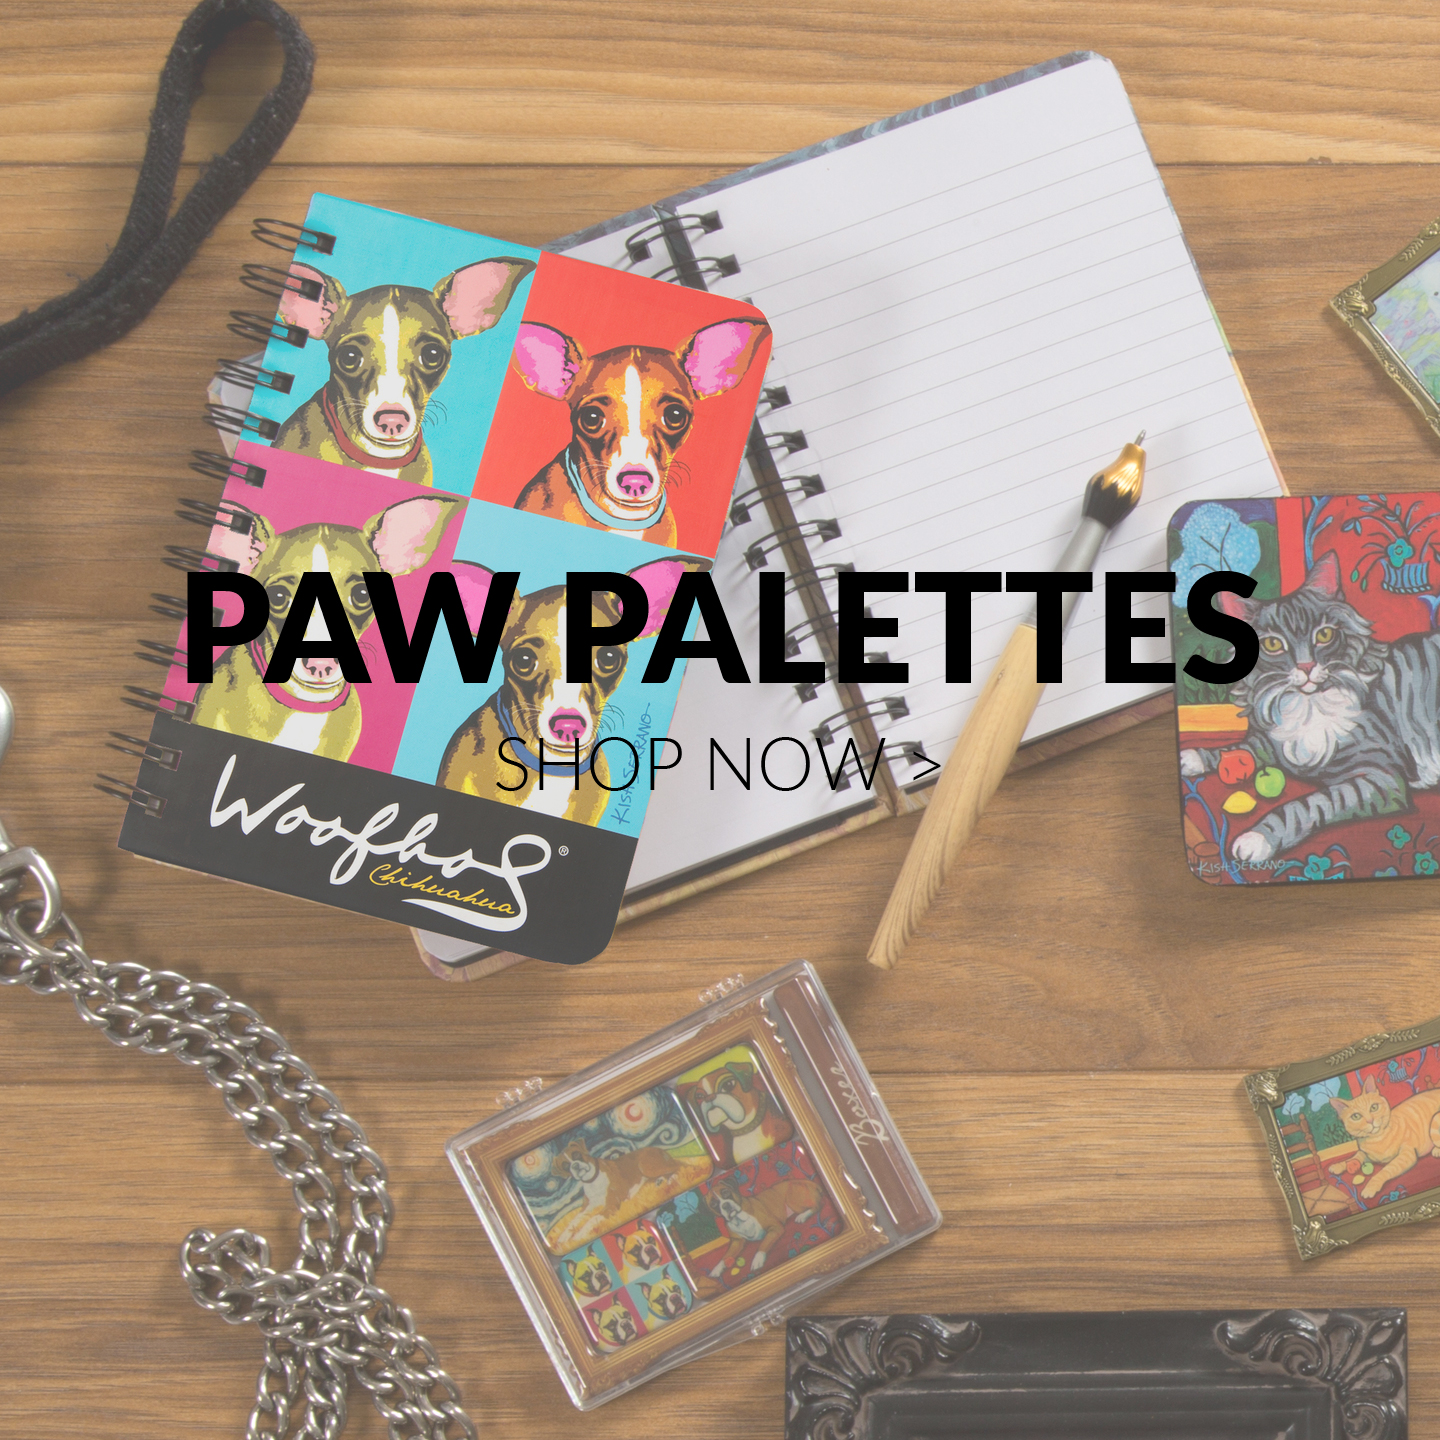 Paw Palettes